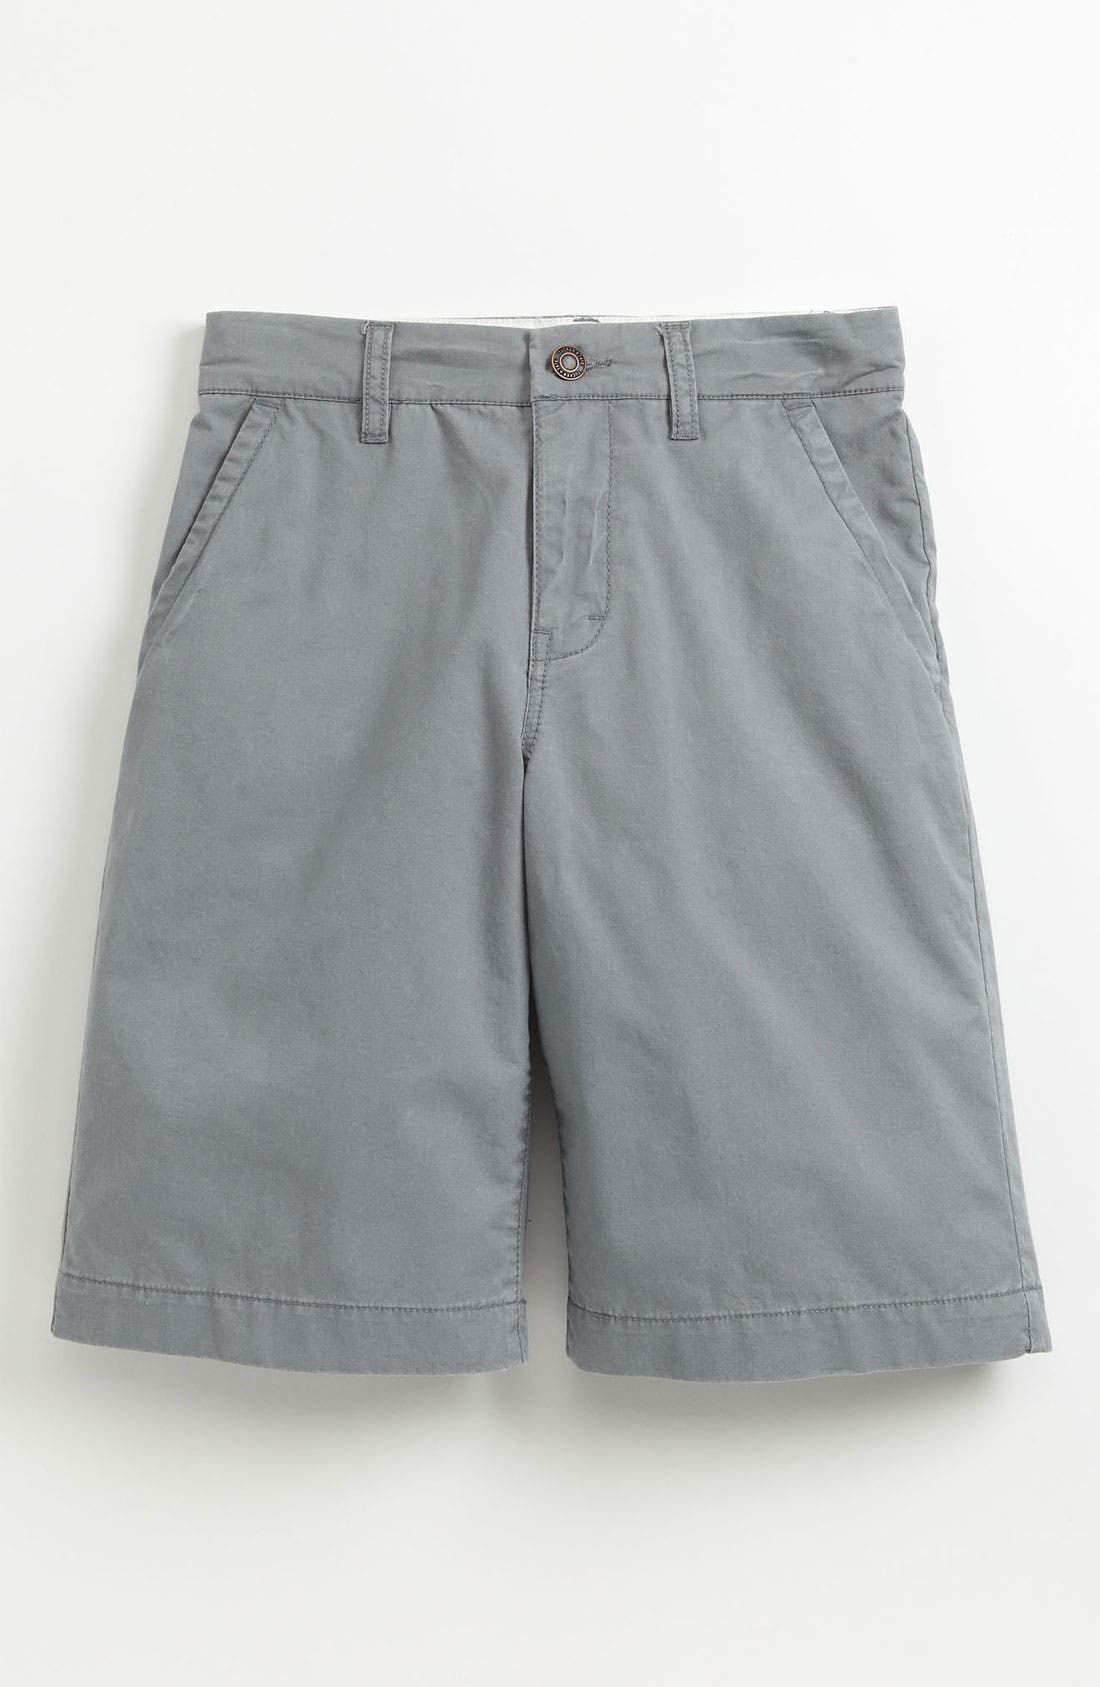 Alternate Image 1 Selected - Tucker + Tate 'Stunt' Chino Shorts (Little Boys)